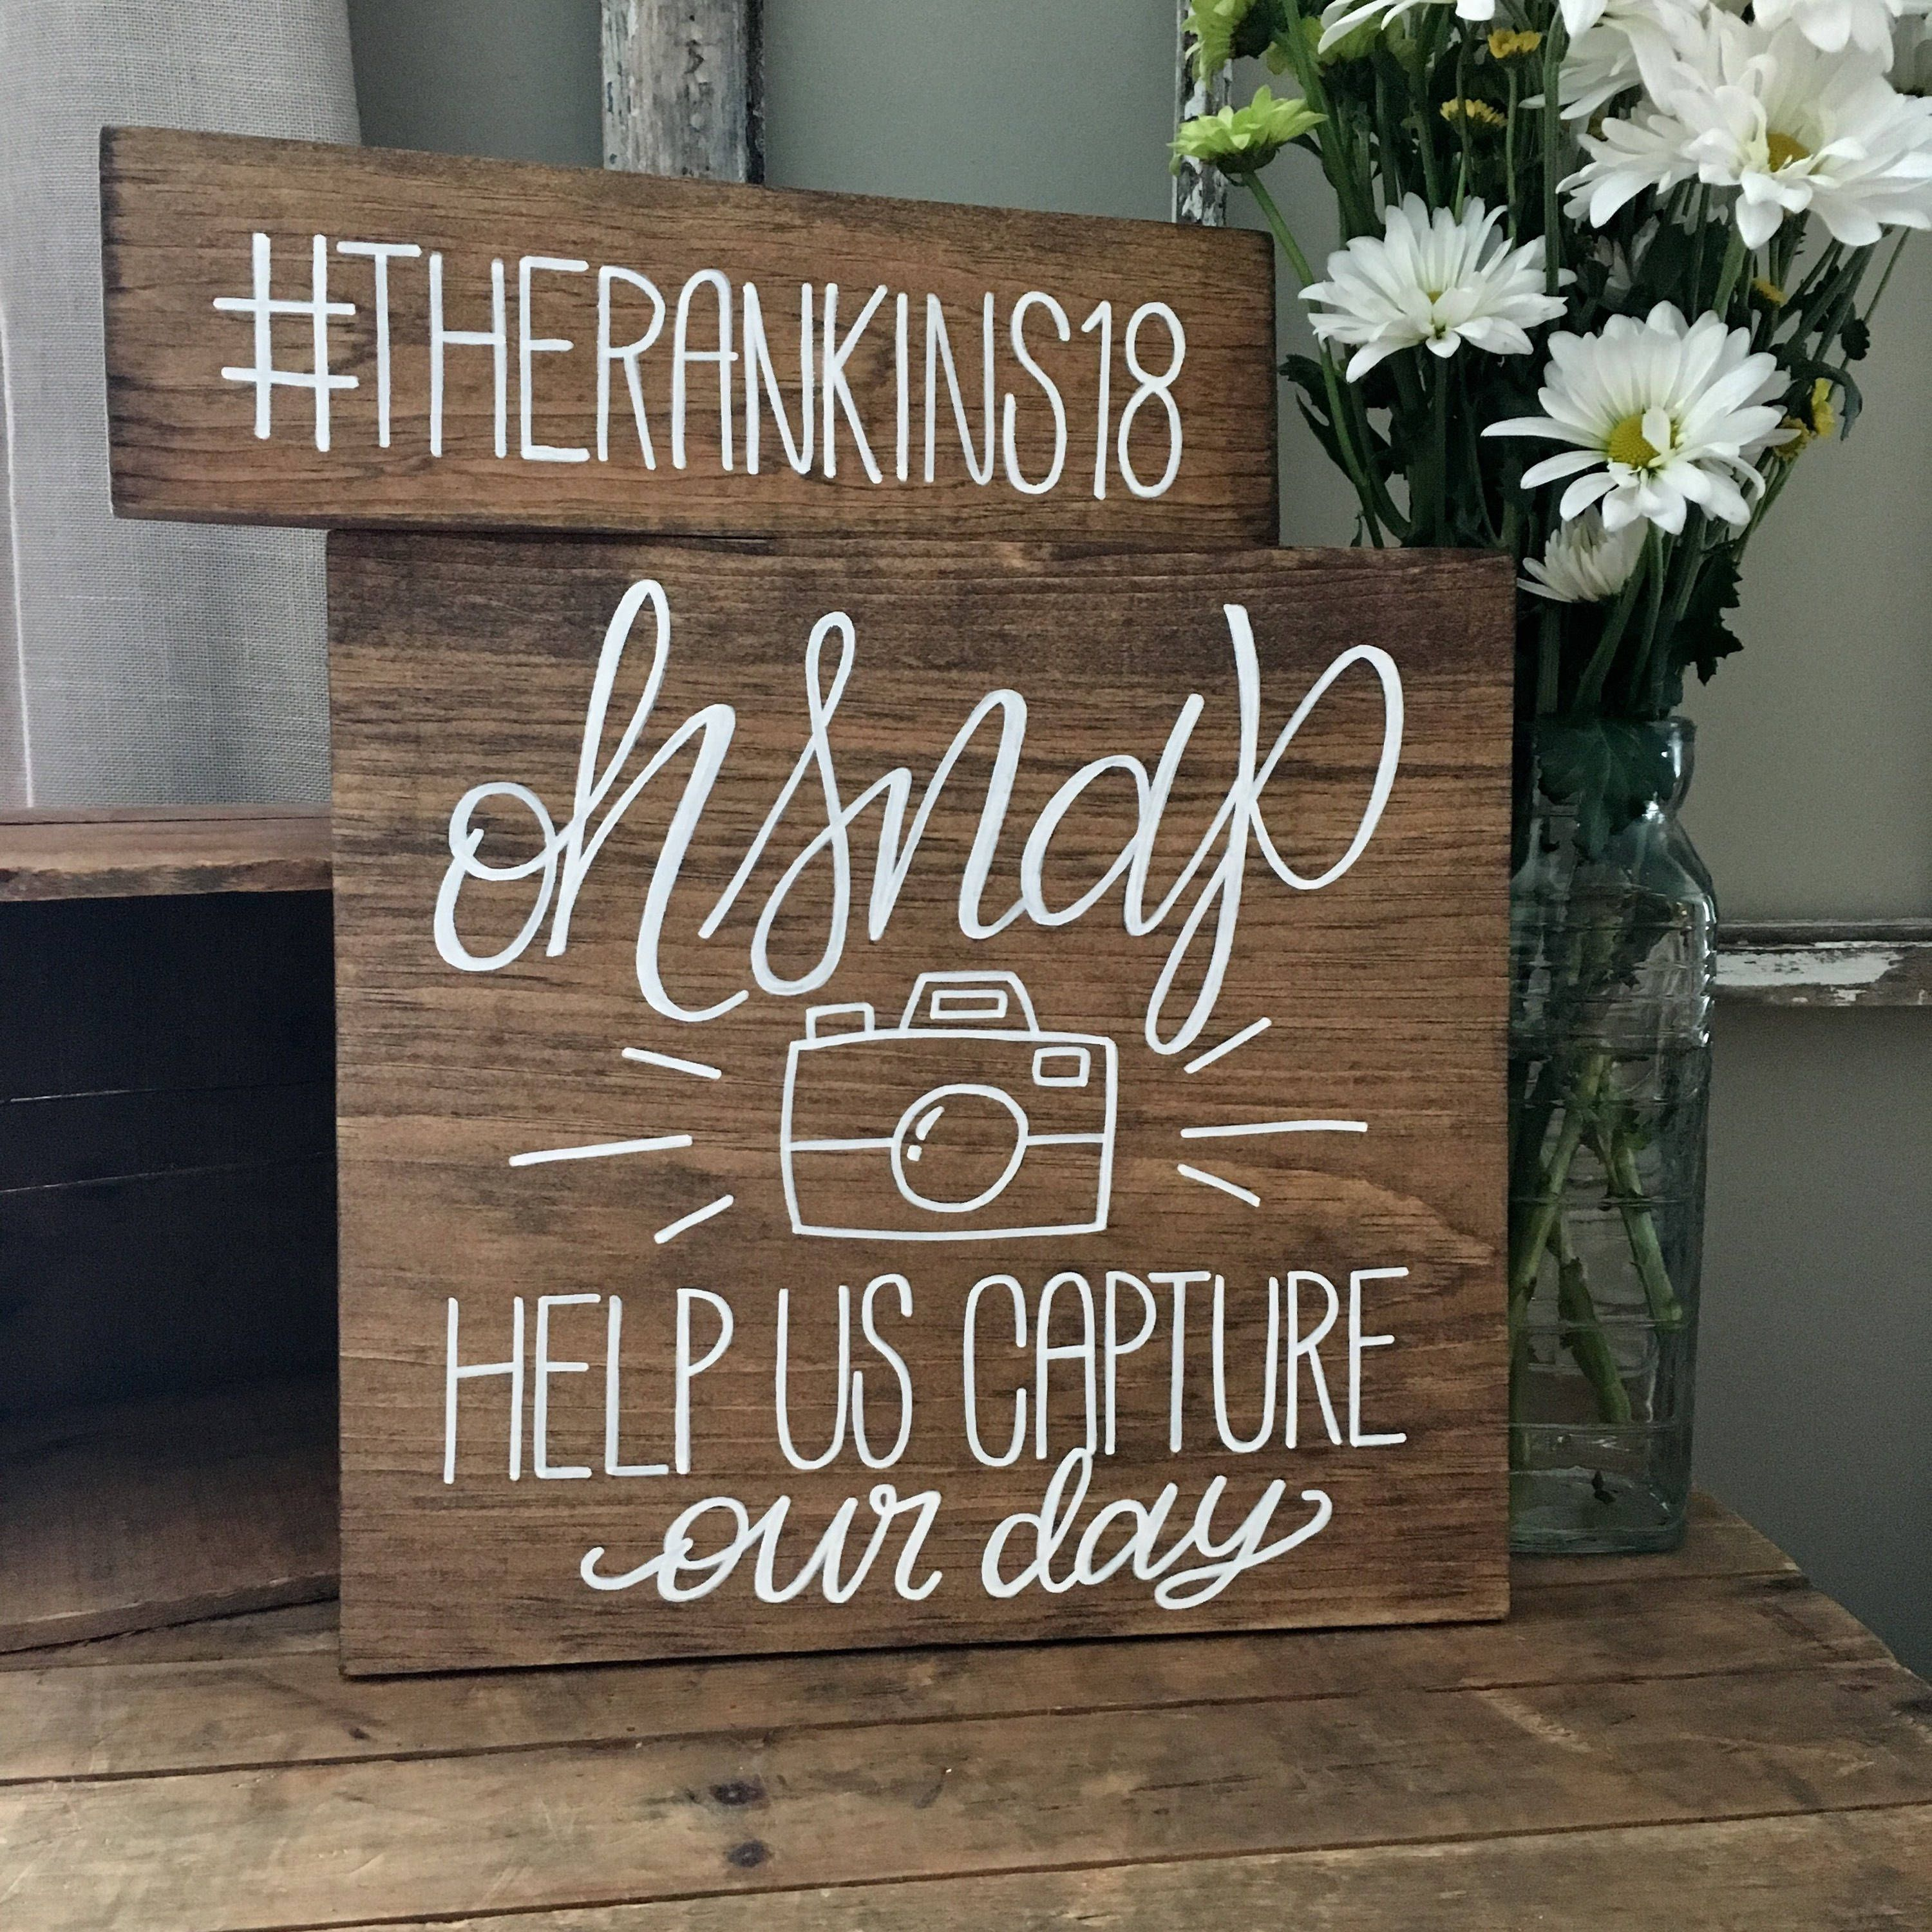 Great Idea For Displaying The Wedding Hashtag Oh Snap Wedding Sign Instagram Wedding Sign Wooden Wedding Signs Instagram Wedding Sign Rustic Wedding Signs